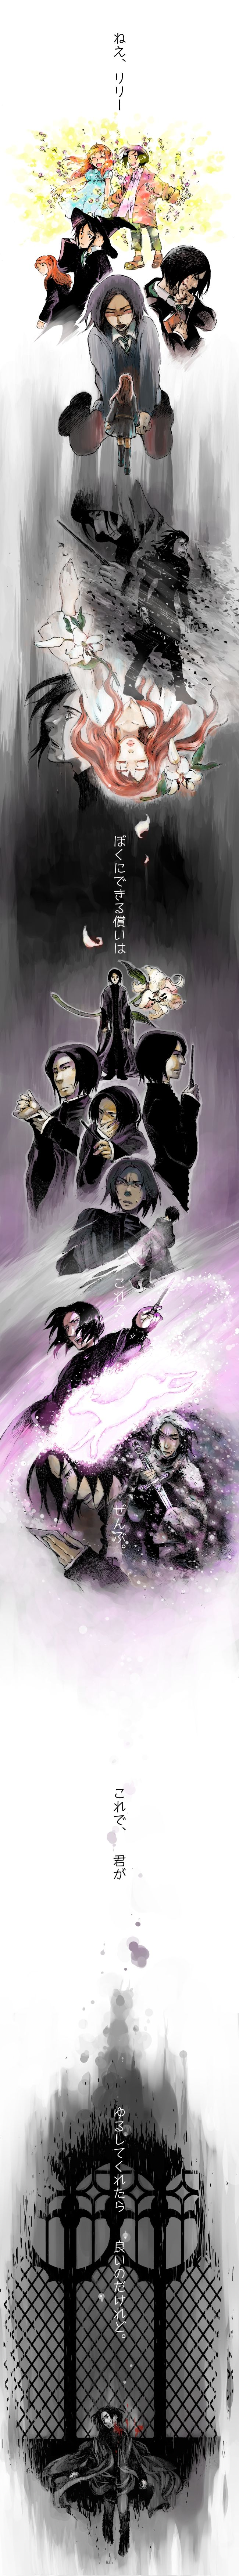 "Previous pinner: ""I translated for just over an hour, and I finally got this: Hey, Lily - Can I repair these wrongs - Here - All of them. - It is now - When you are not allowed to say - You find he is good."" 